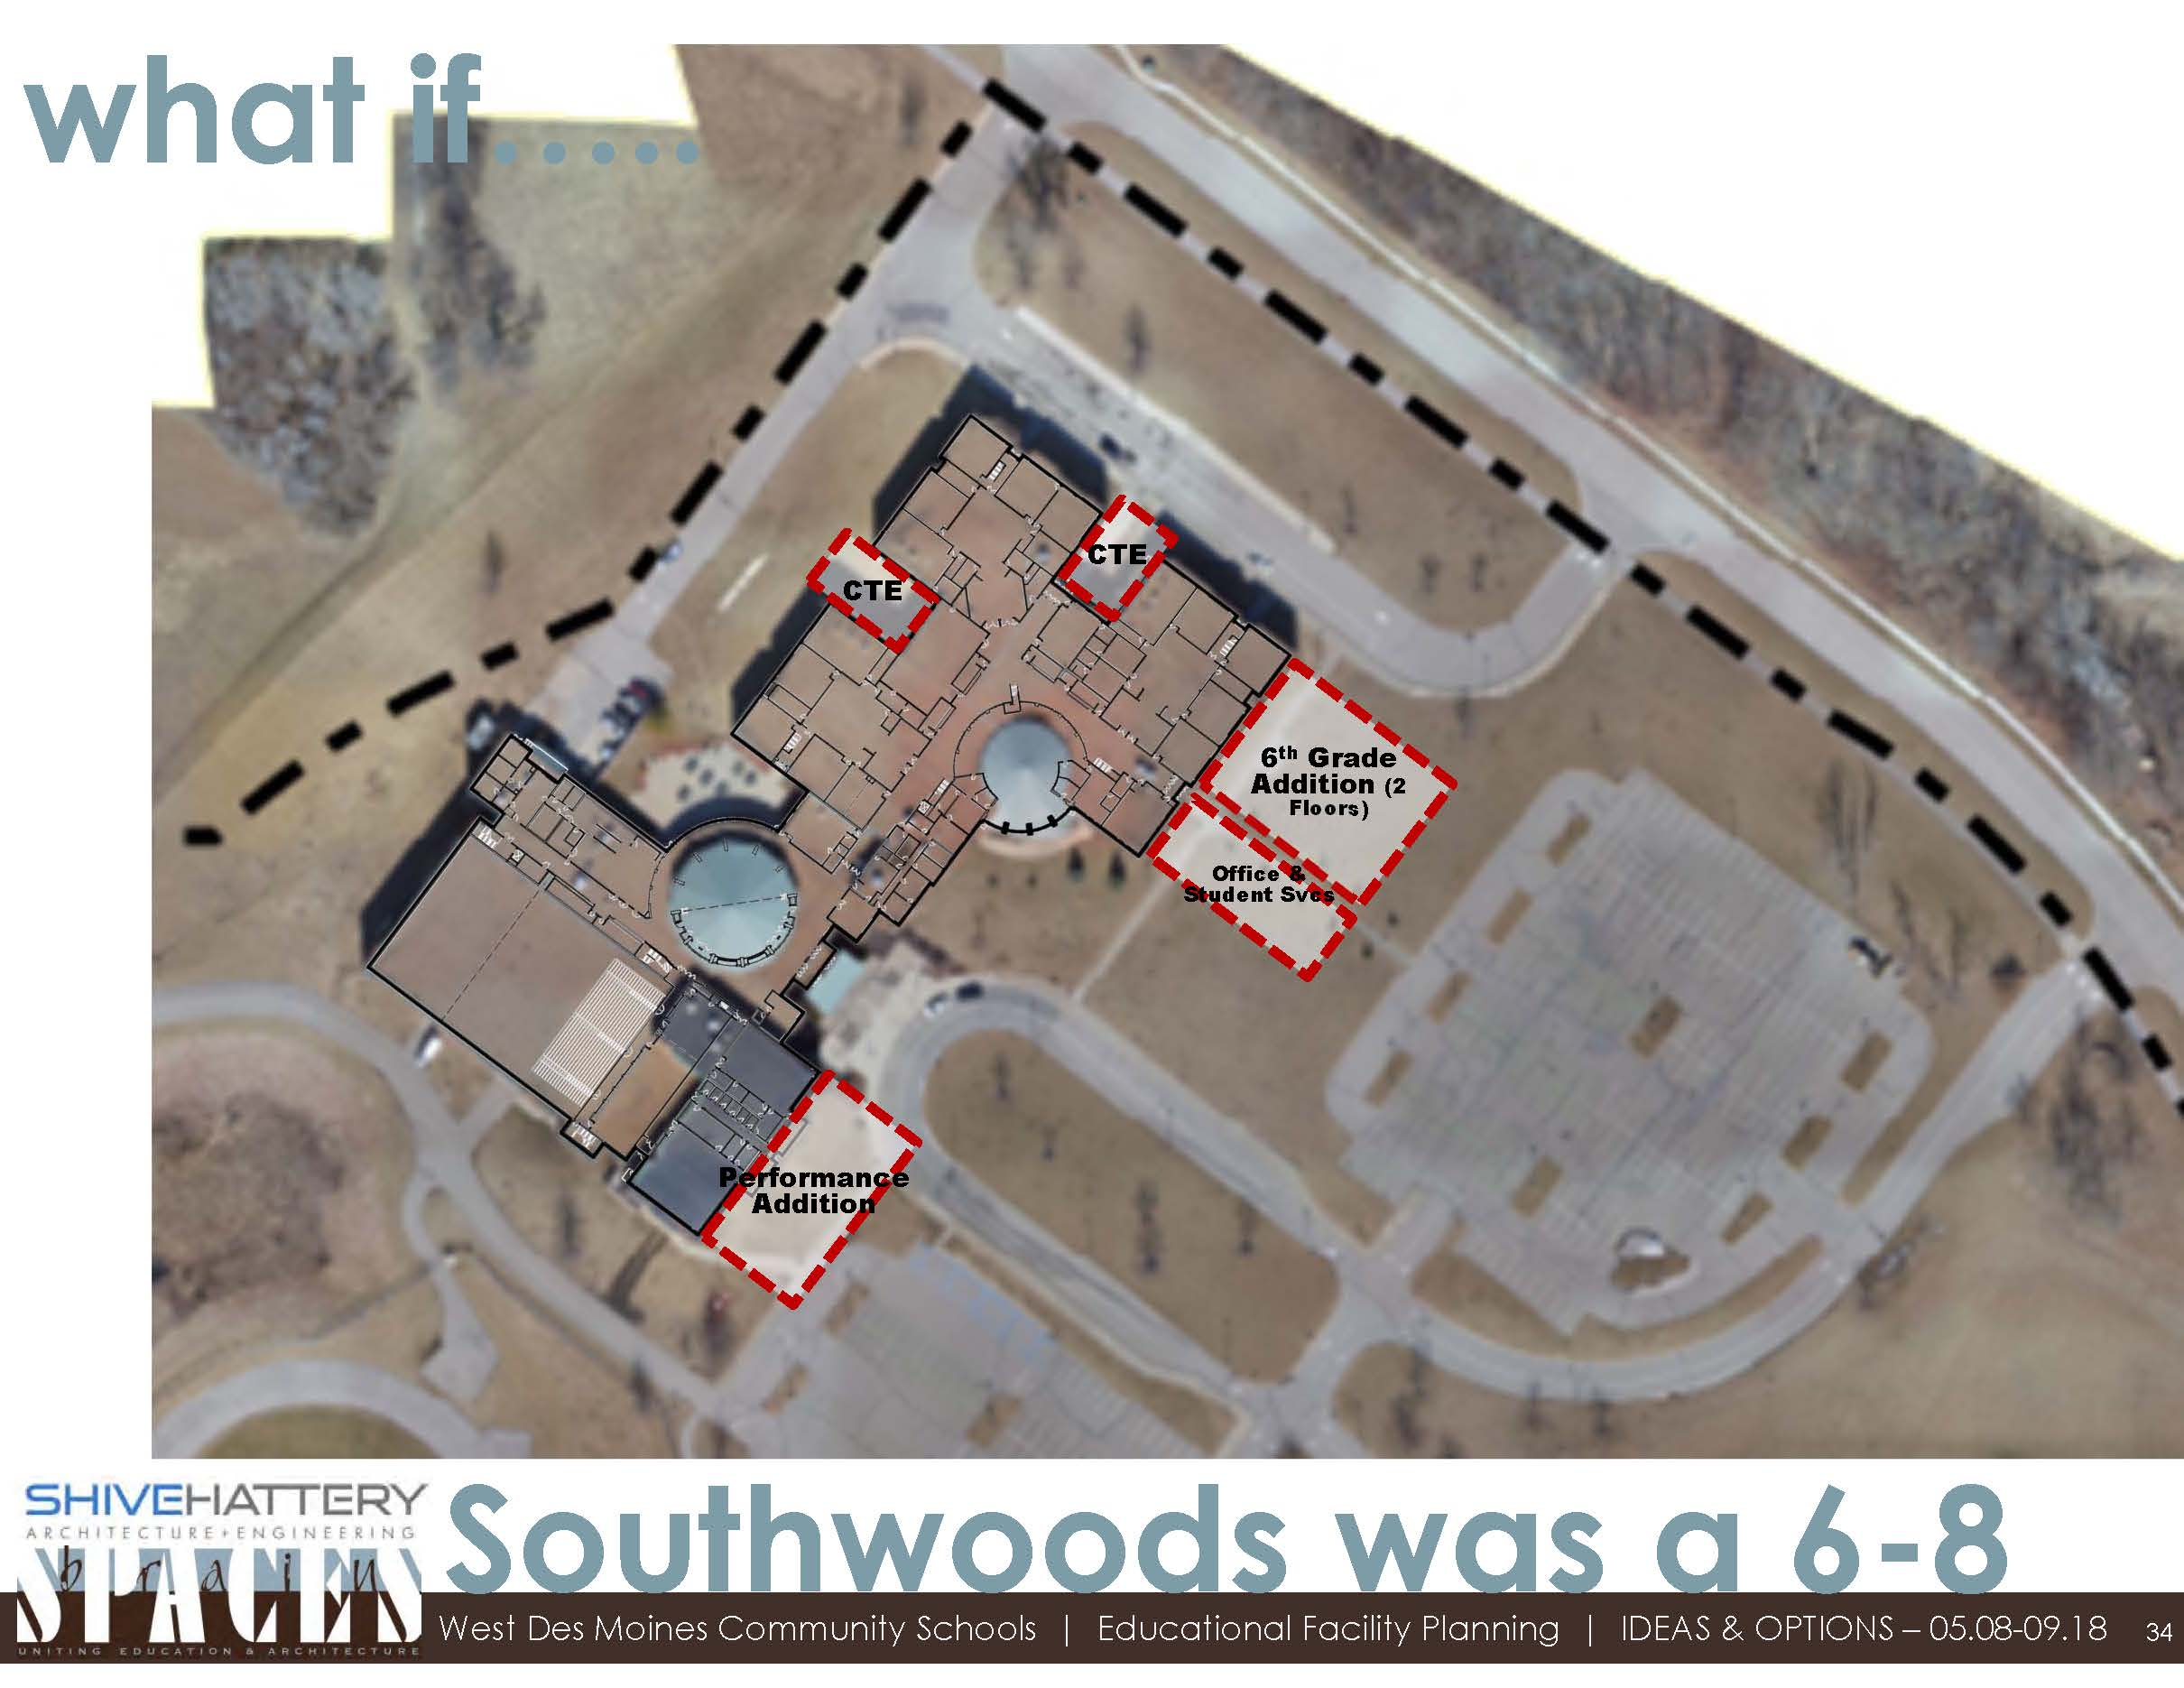 Valley Southwoods Option  This graphic outlines a how Valley Southwoods Freshman High School could be transitioned to a 6-8 building   Click on the graphic to view full image.